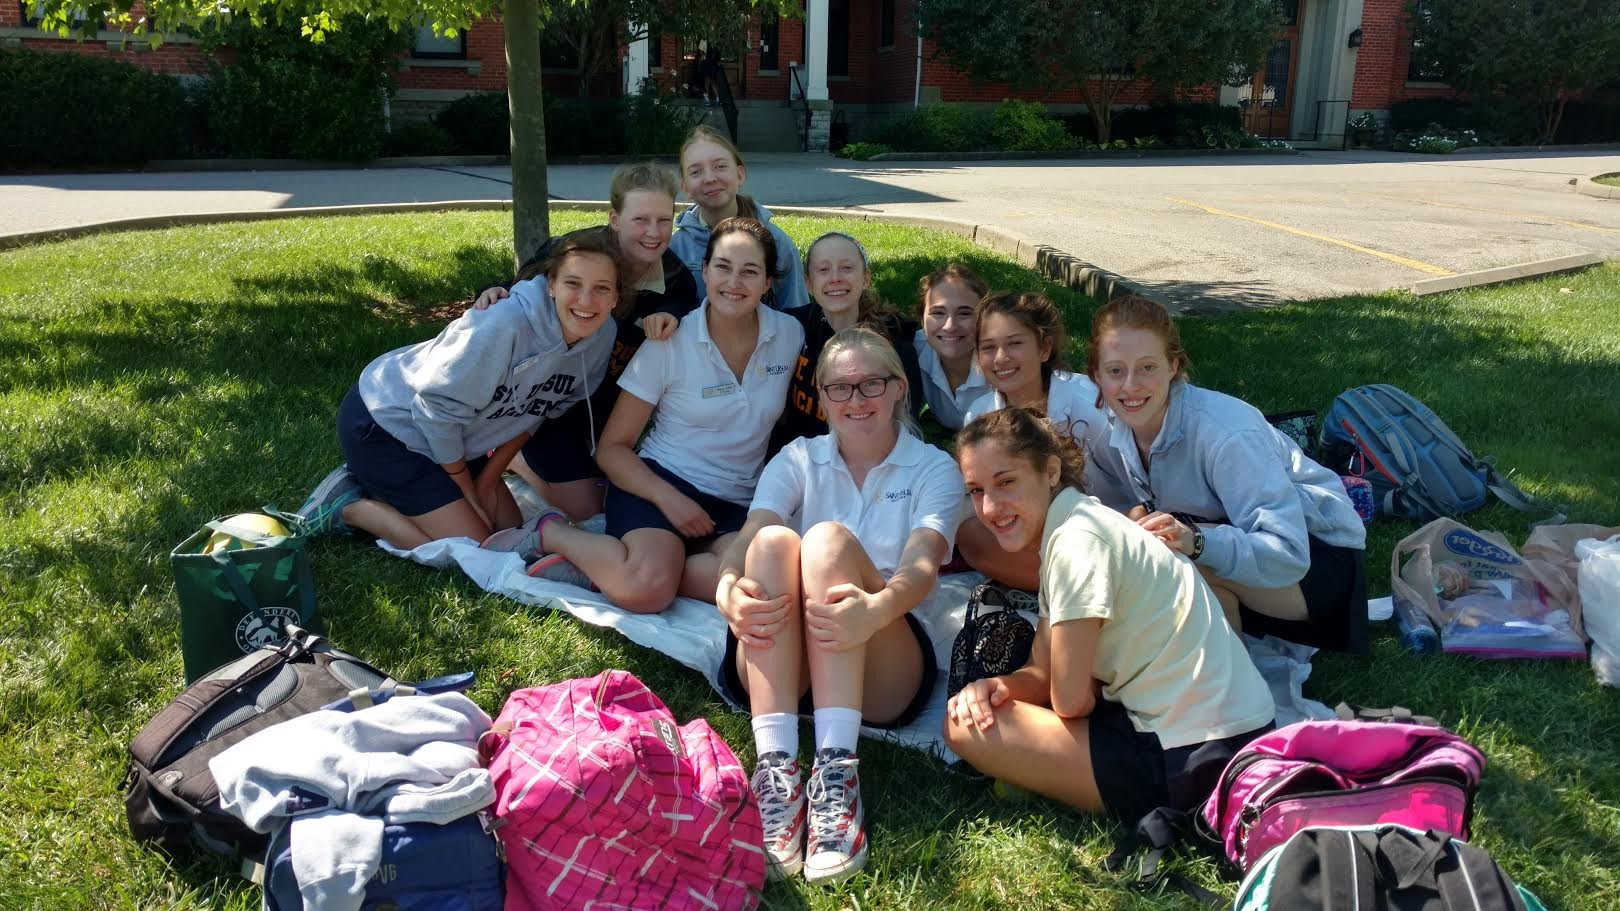 Girls are enjoying the cooler weather all across the Saint Ursula campus!